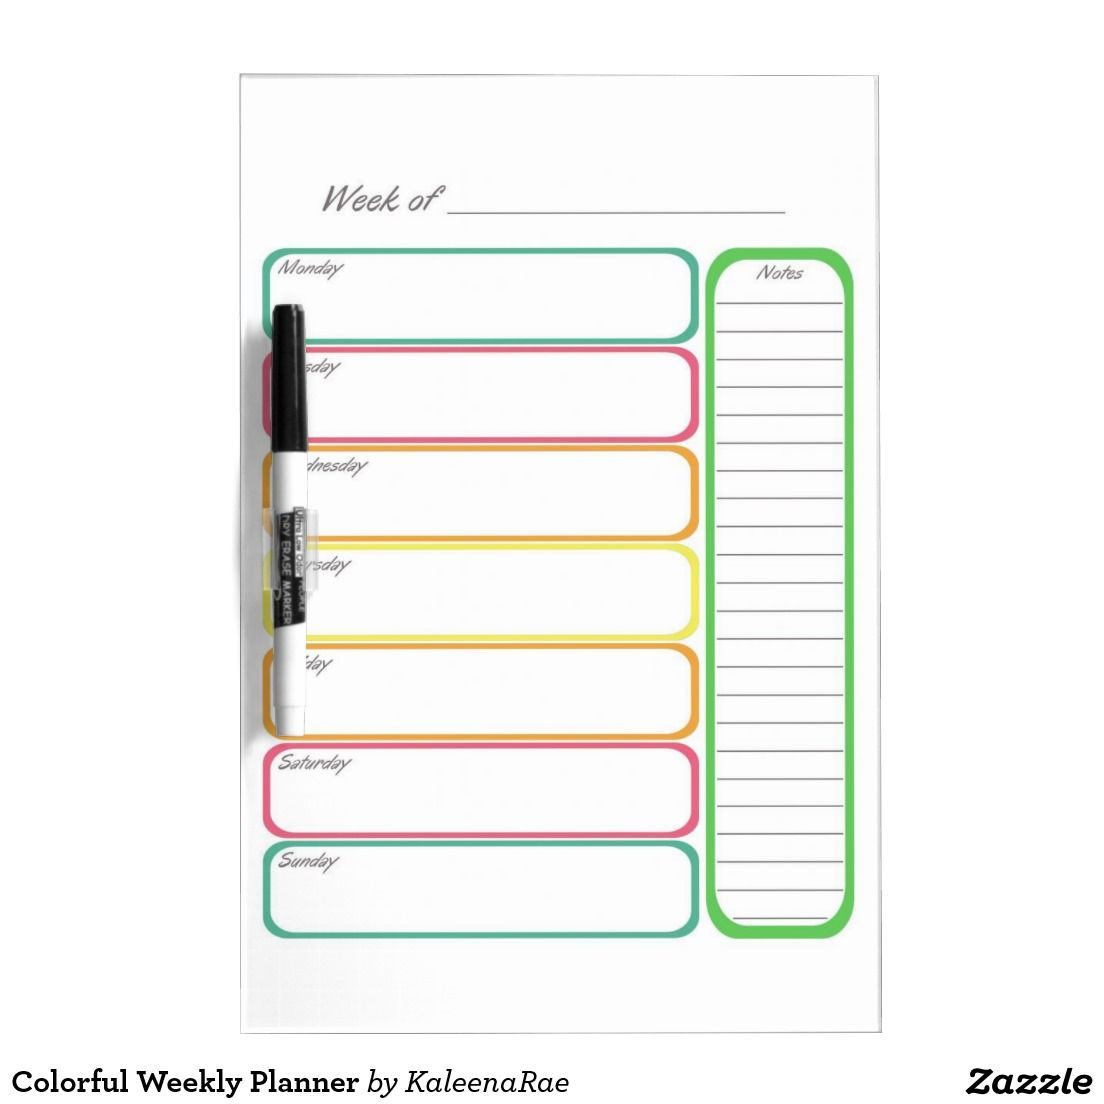 Colorful Weekly Planner Dry Erase Board